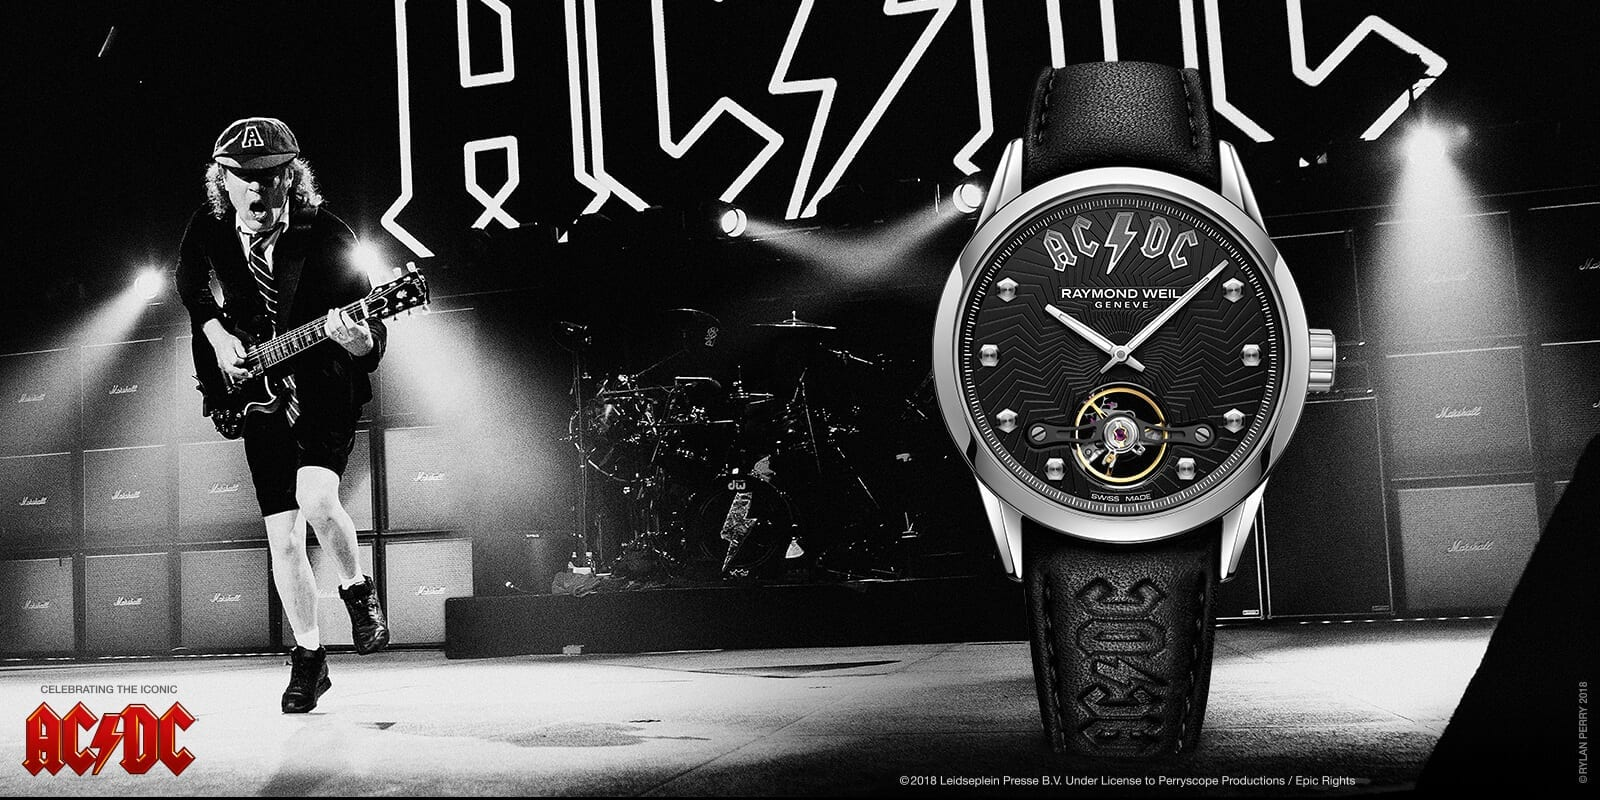 Raymond weil ac/dc freelancer automatic limited edition watch official ad